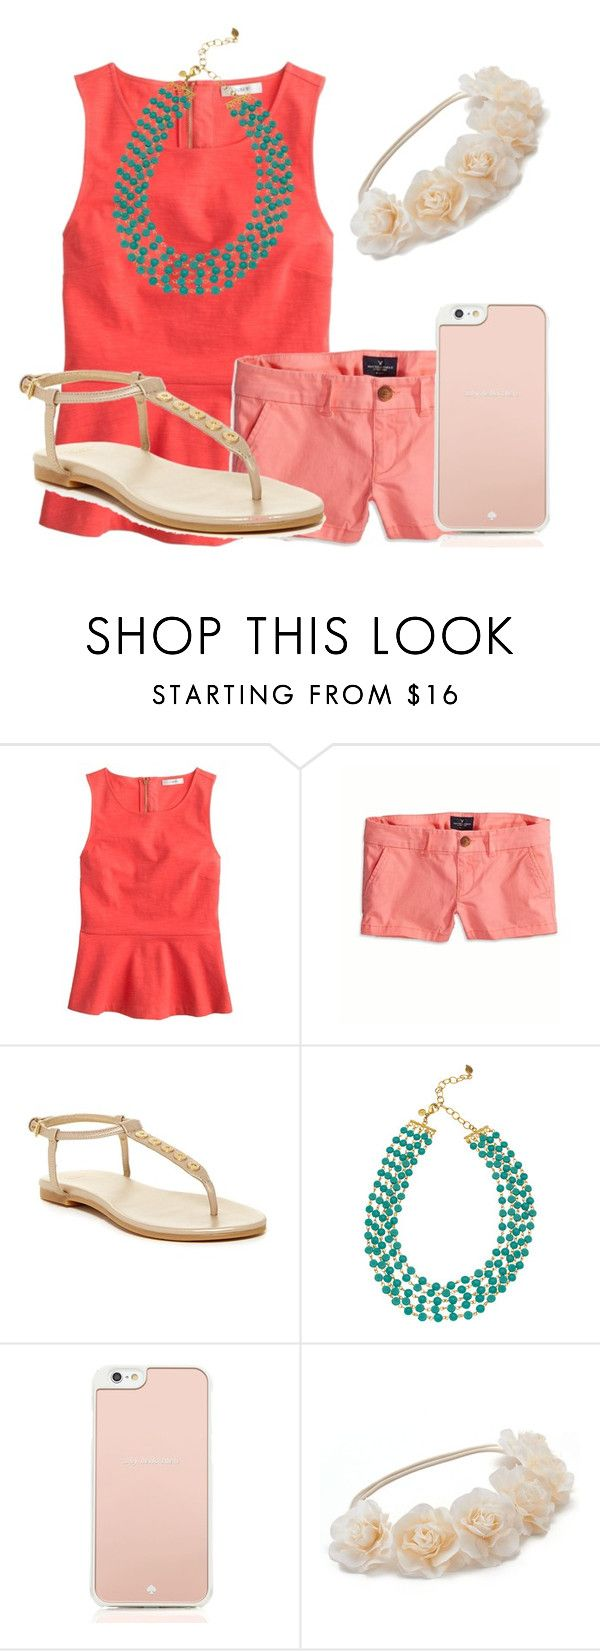 """My boyfriend asked me to sing to him "" by sarahs2734 ❤ liked on Polyvore featuring moda, J.Crew, American Eagle Outfitters, Cole Haan, David Aubrey, Kate Spade e Mudd"